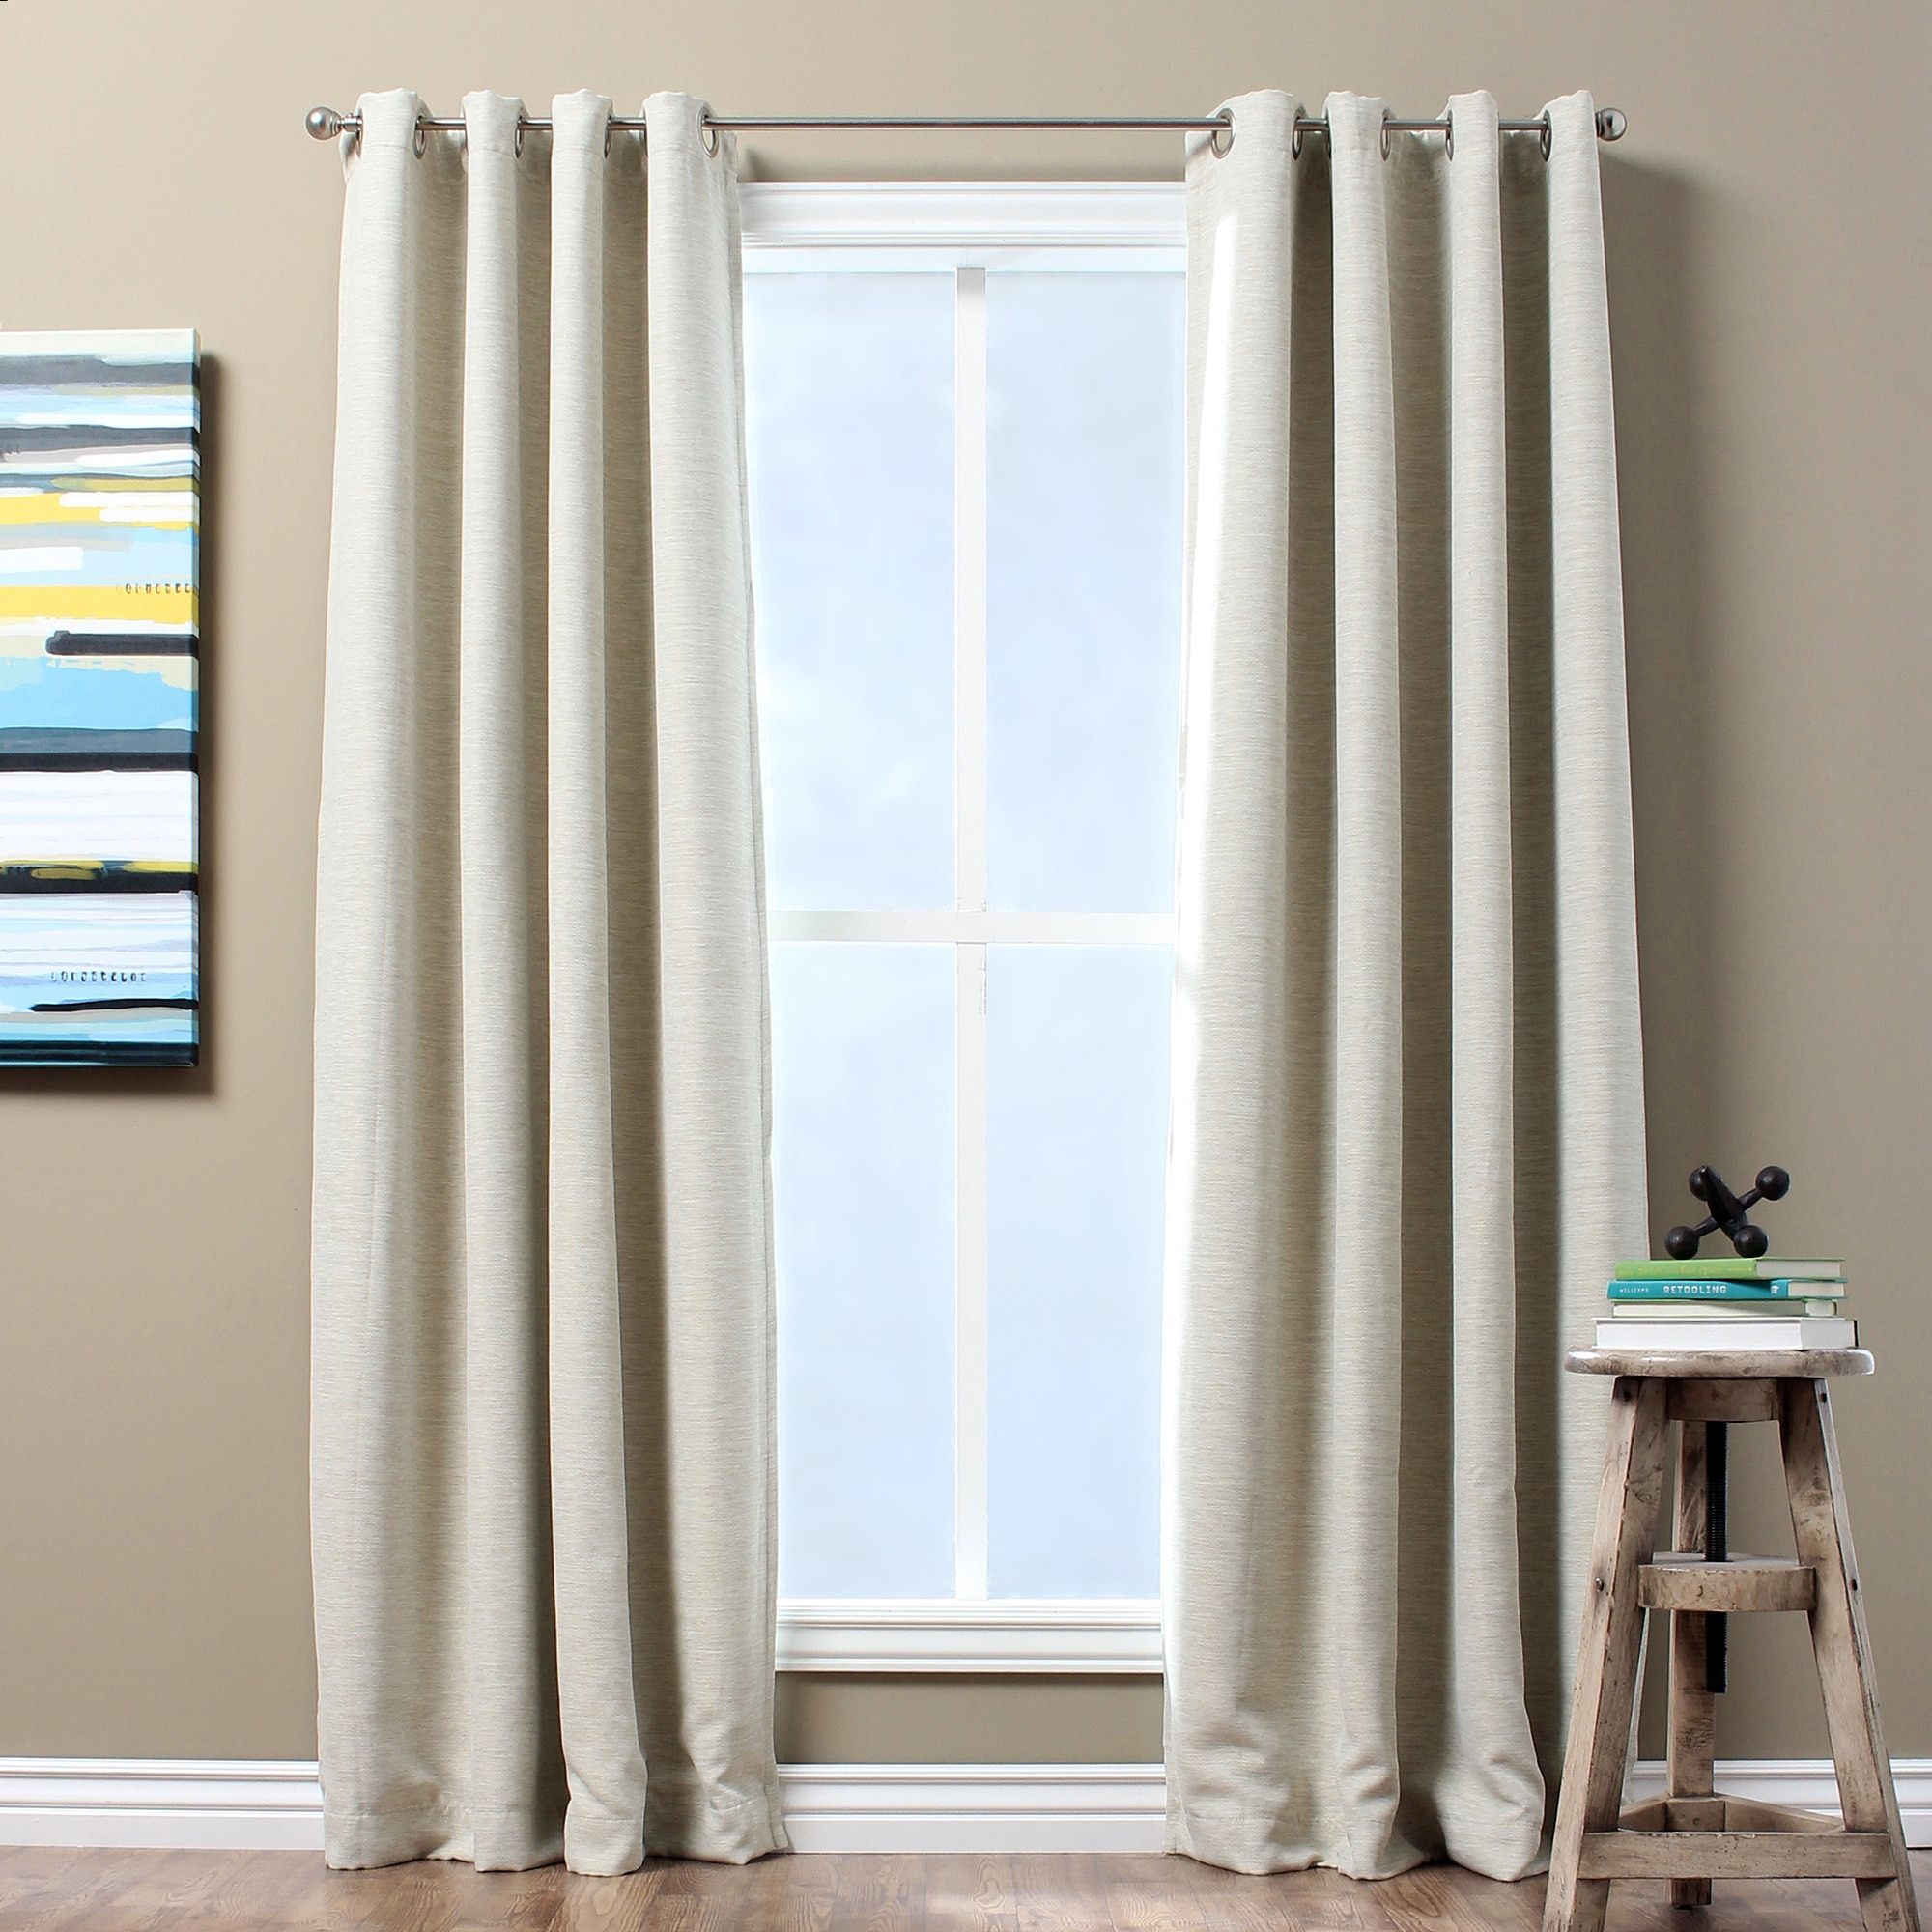 blackout textiles curtains ca thermal resistant treatments wayfair panels window sally heat curtain solid pdp grommet madonna reviews